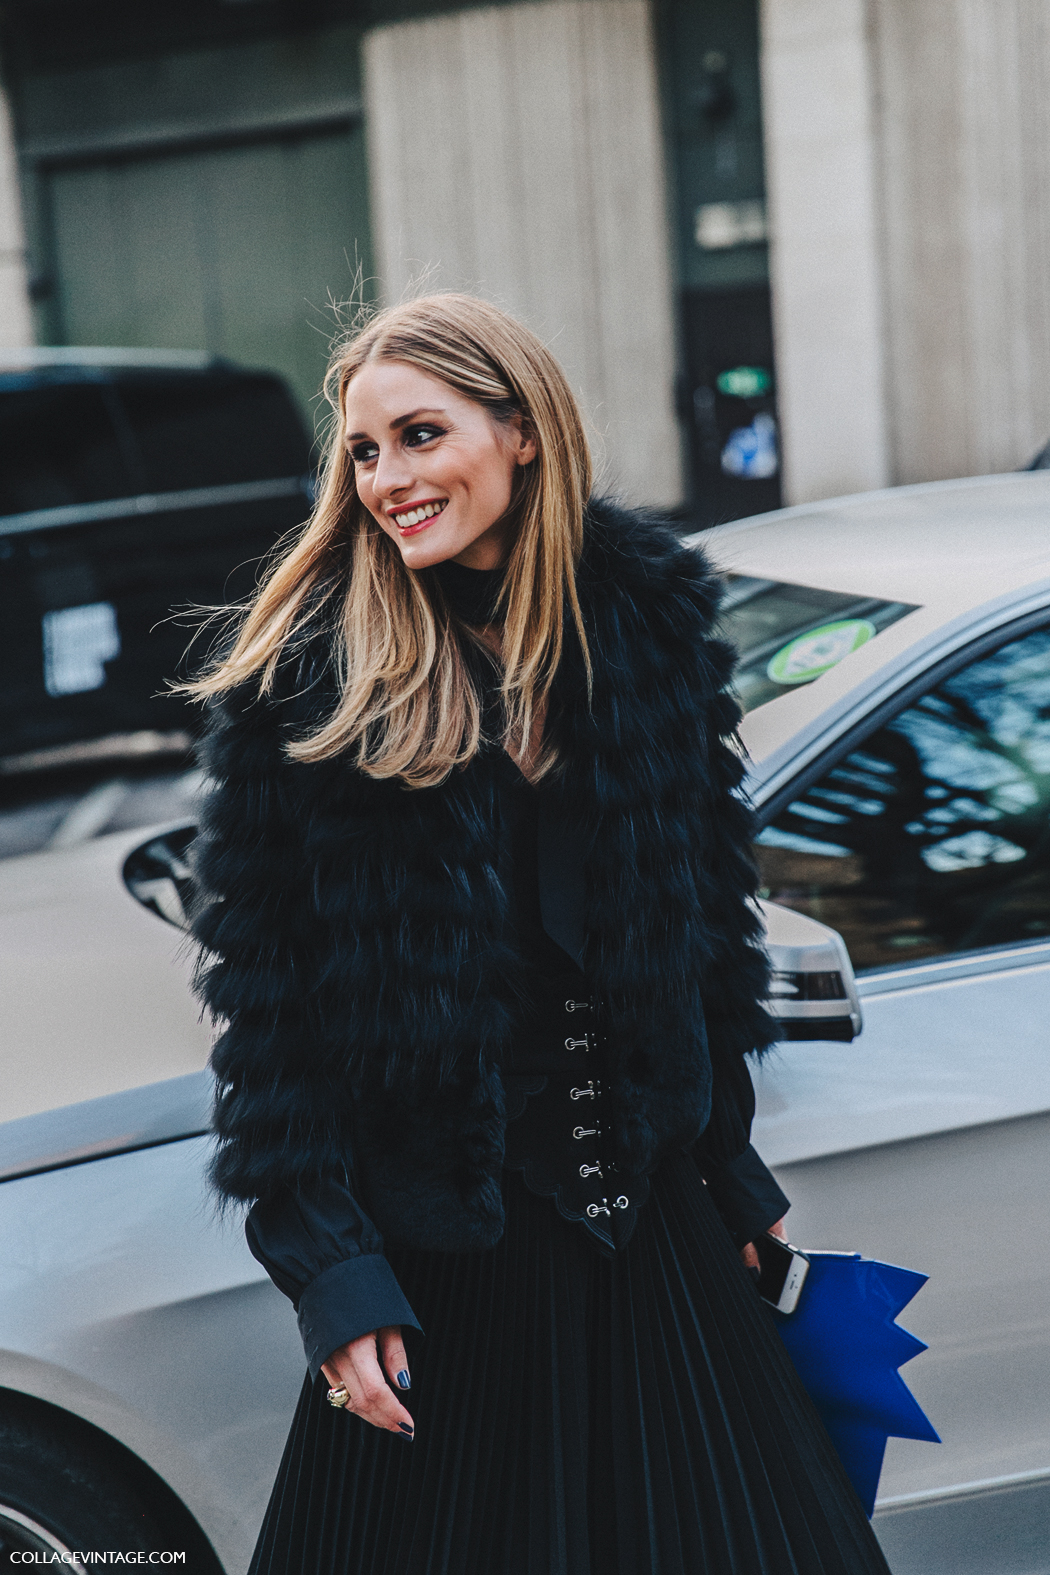 LFW-London_Fashion_Week_Fall_16-Street_Style-Collage_Vintage-Olivia_Palermo-Midi_Skirt_Red_Boots-Erdem-8